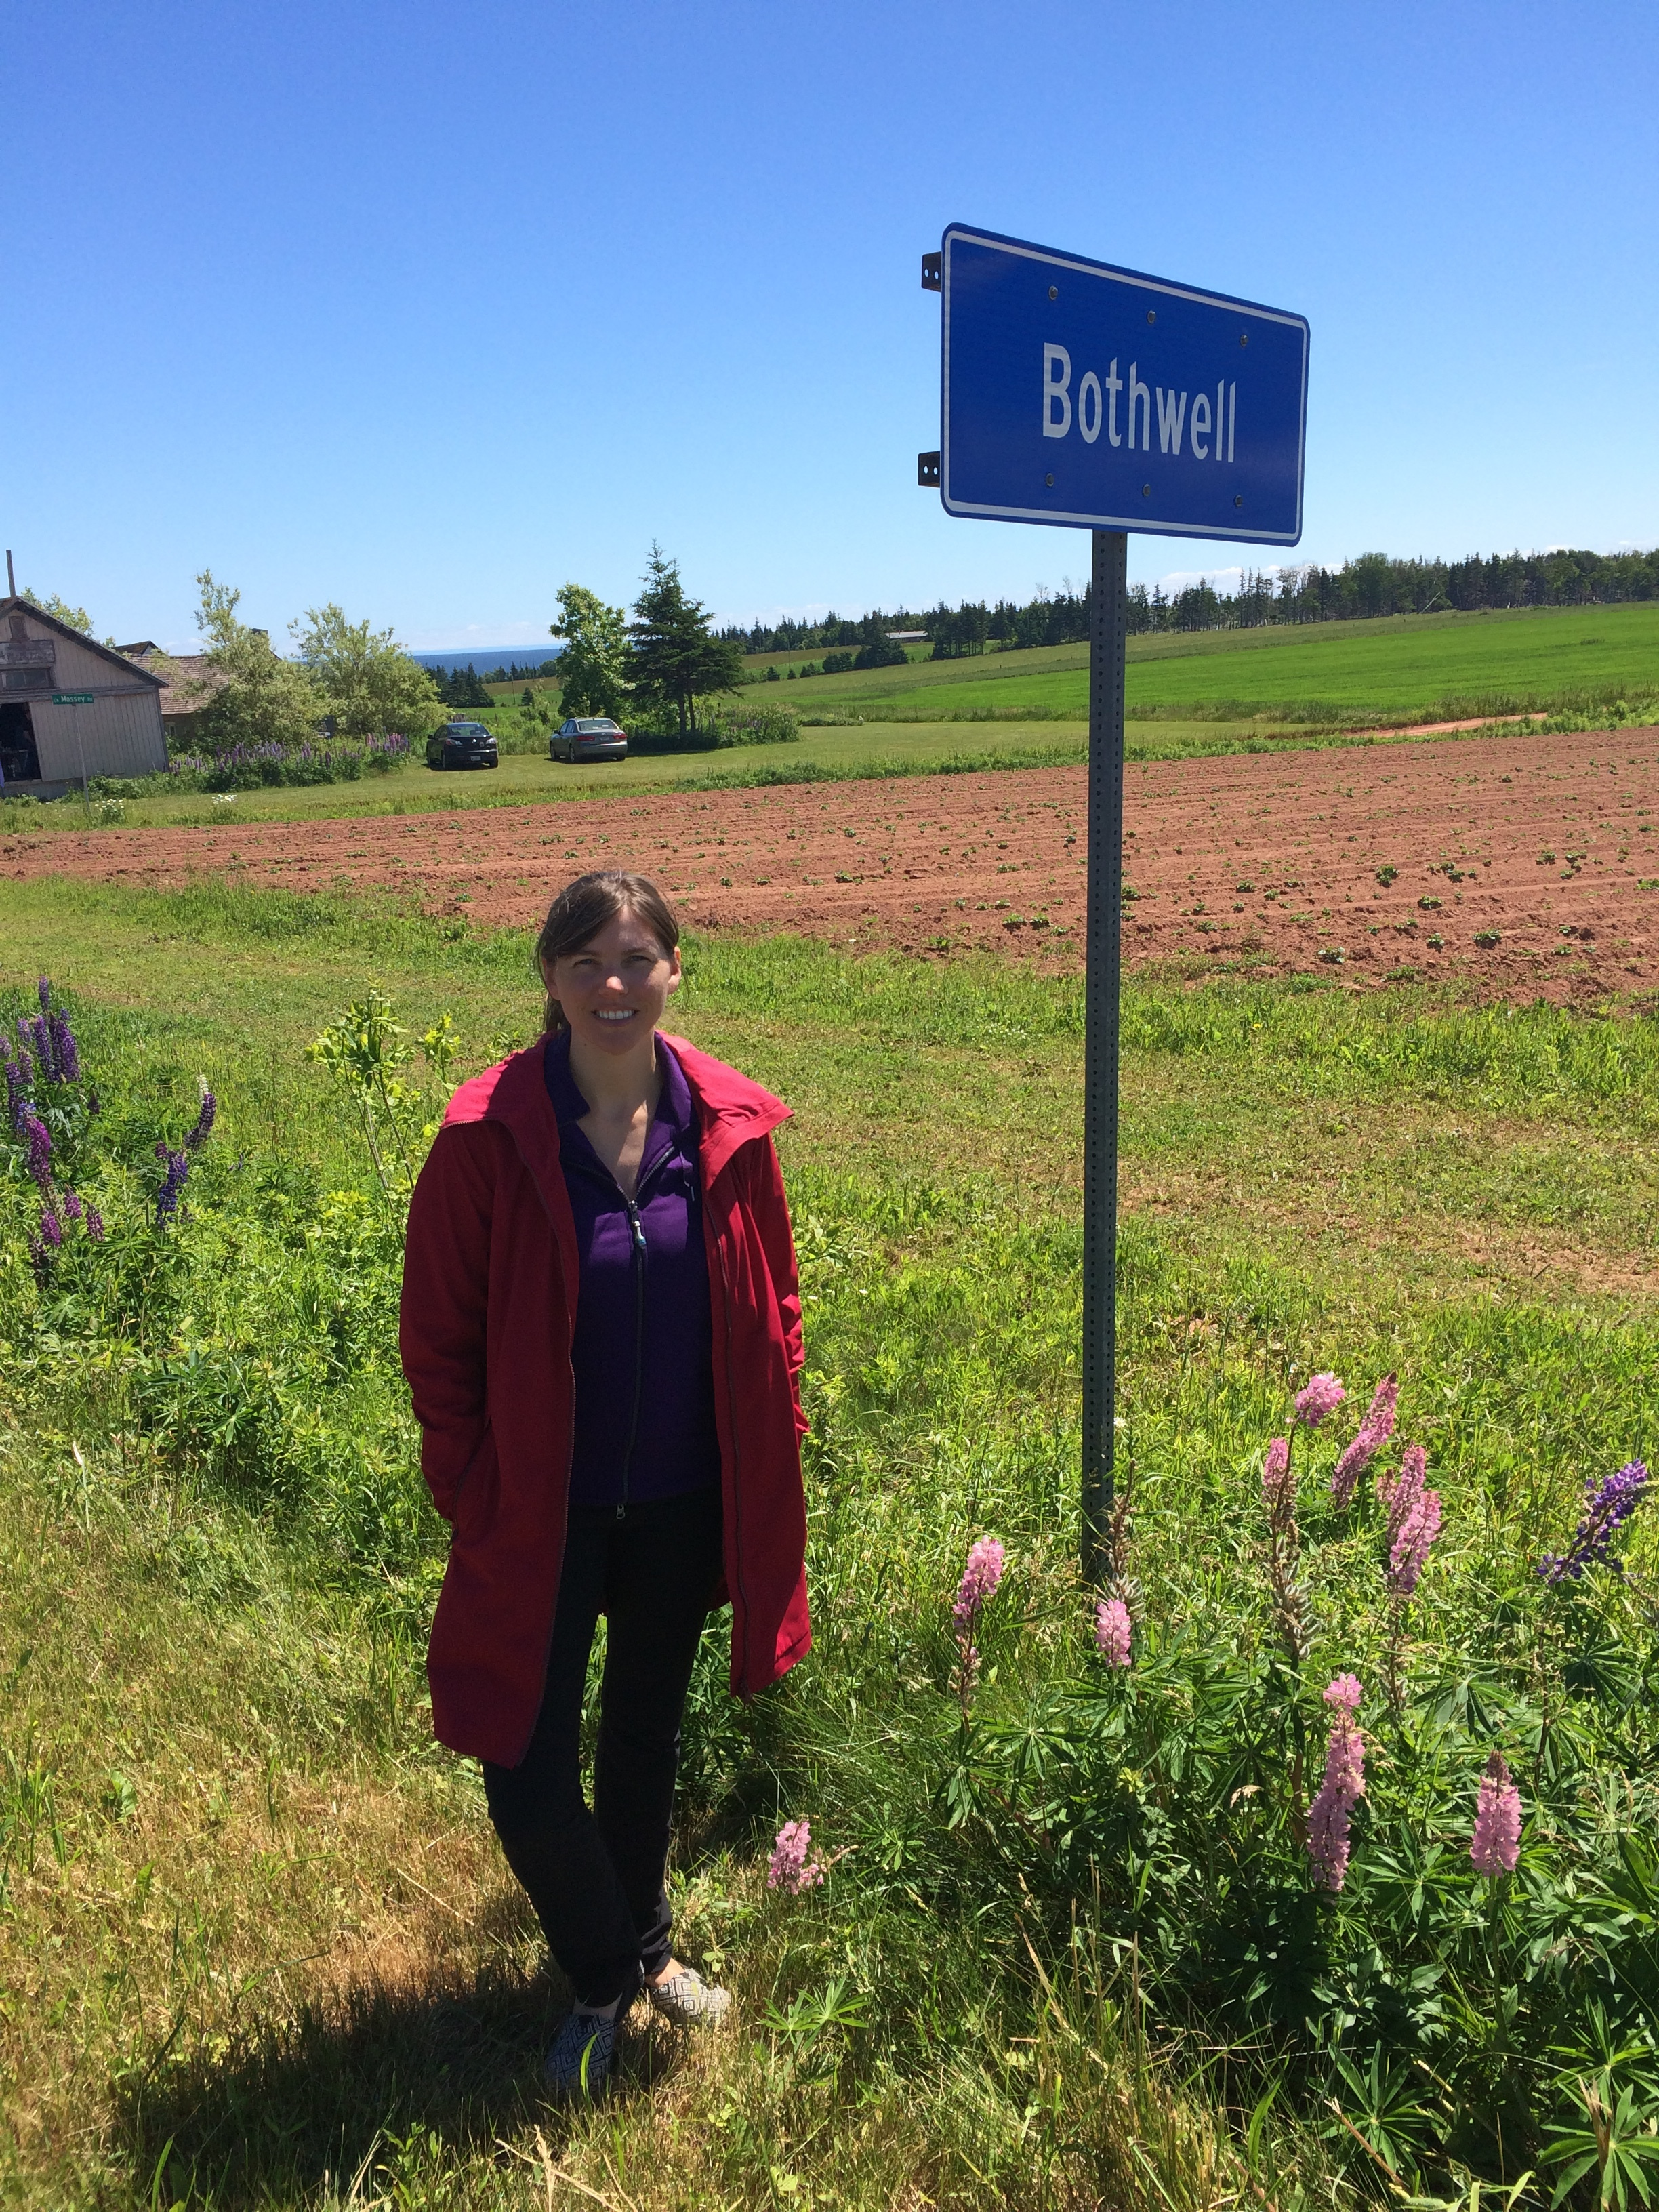 There is a Bothwell in PEI and it is even smaller than the Ontario one.